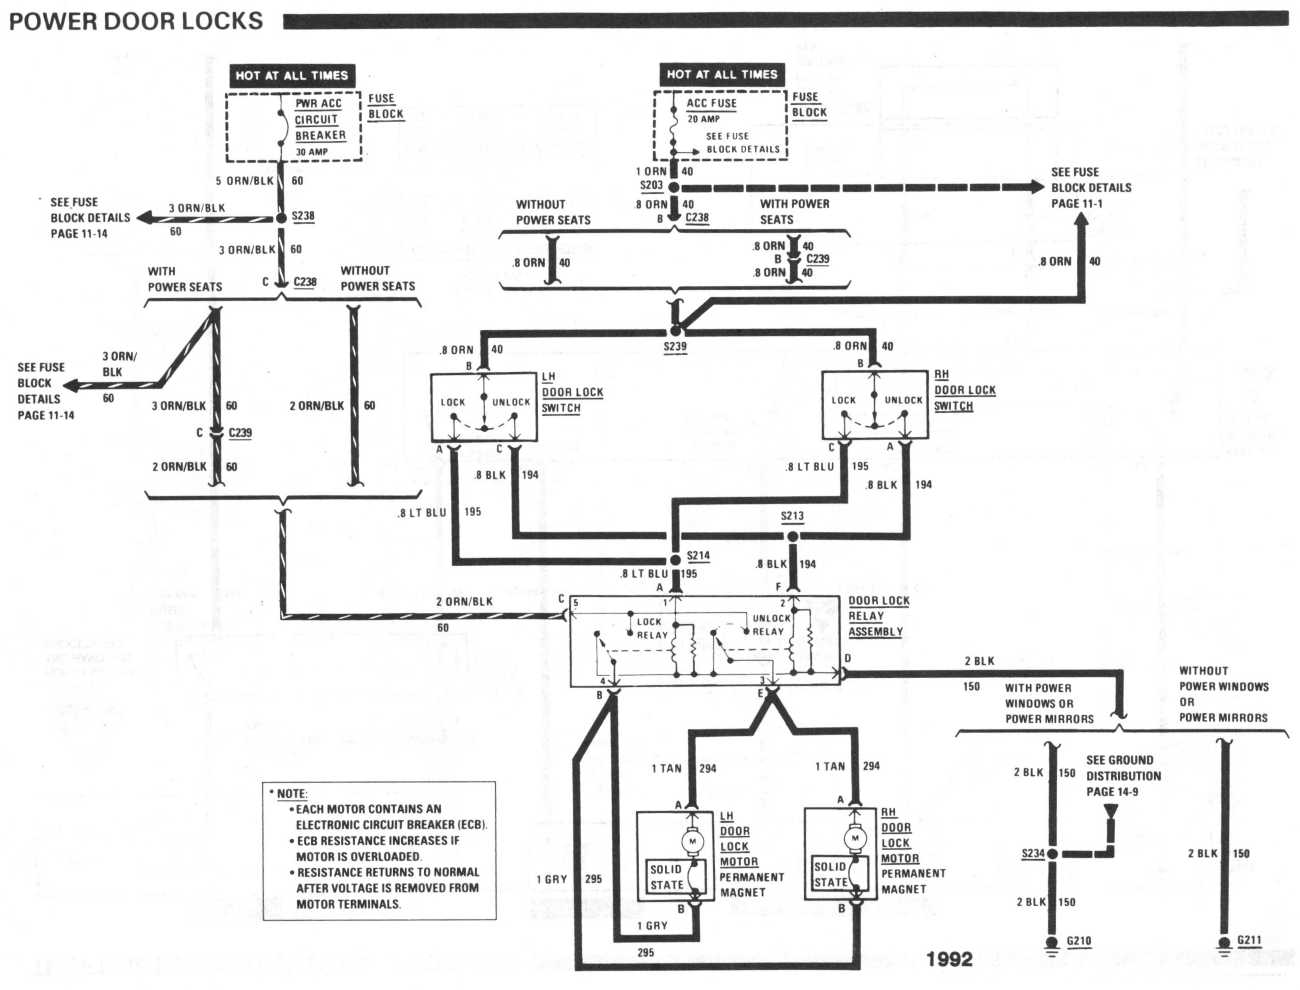 1988 Chevy Suburban Wiring Diagram On Wiring Diagram For 1950 Gmc